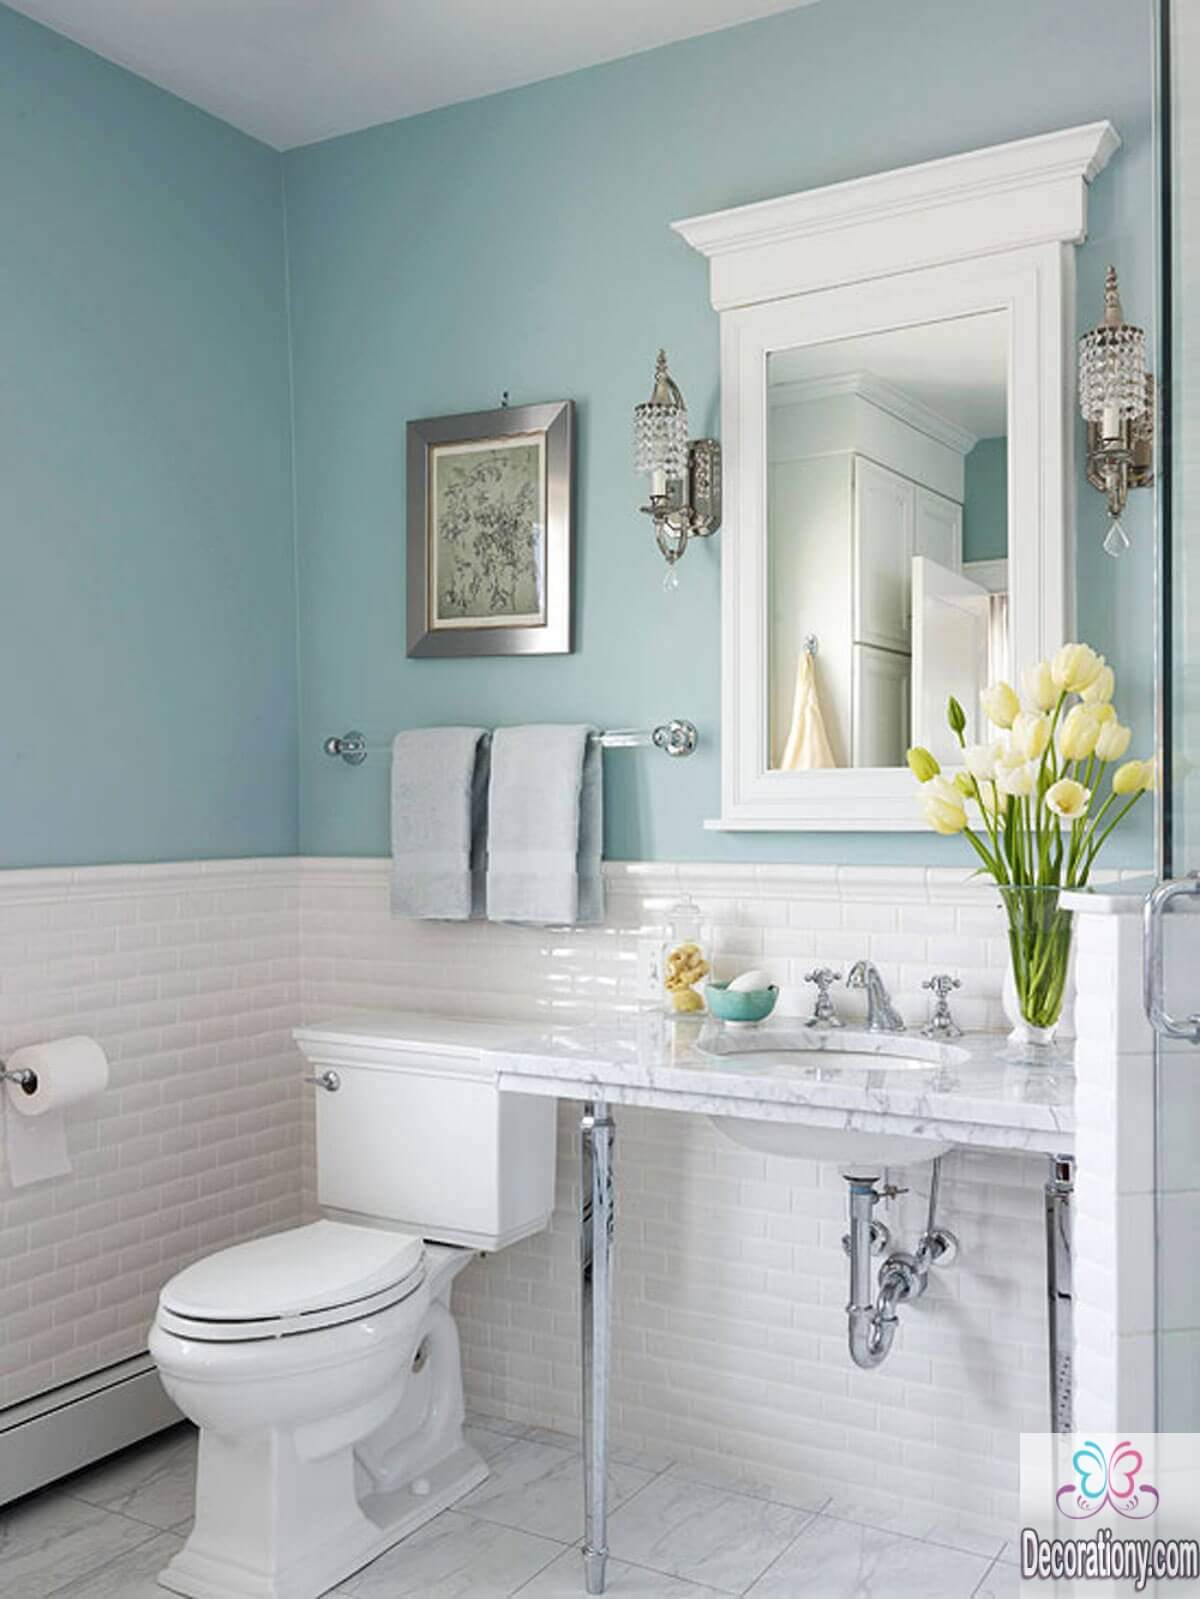 10 affordable colors for small bathrooms decoration y for Great small bathroom designs